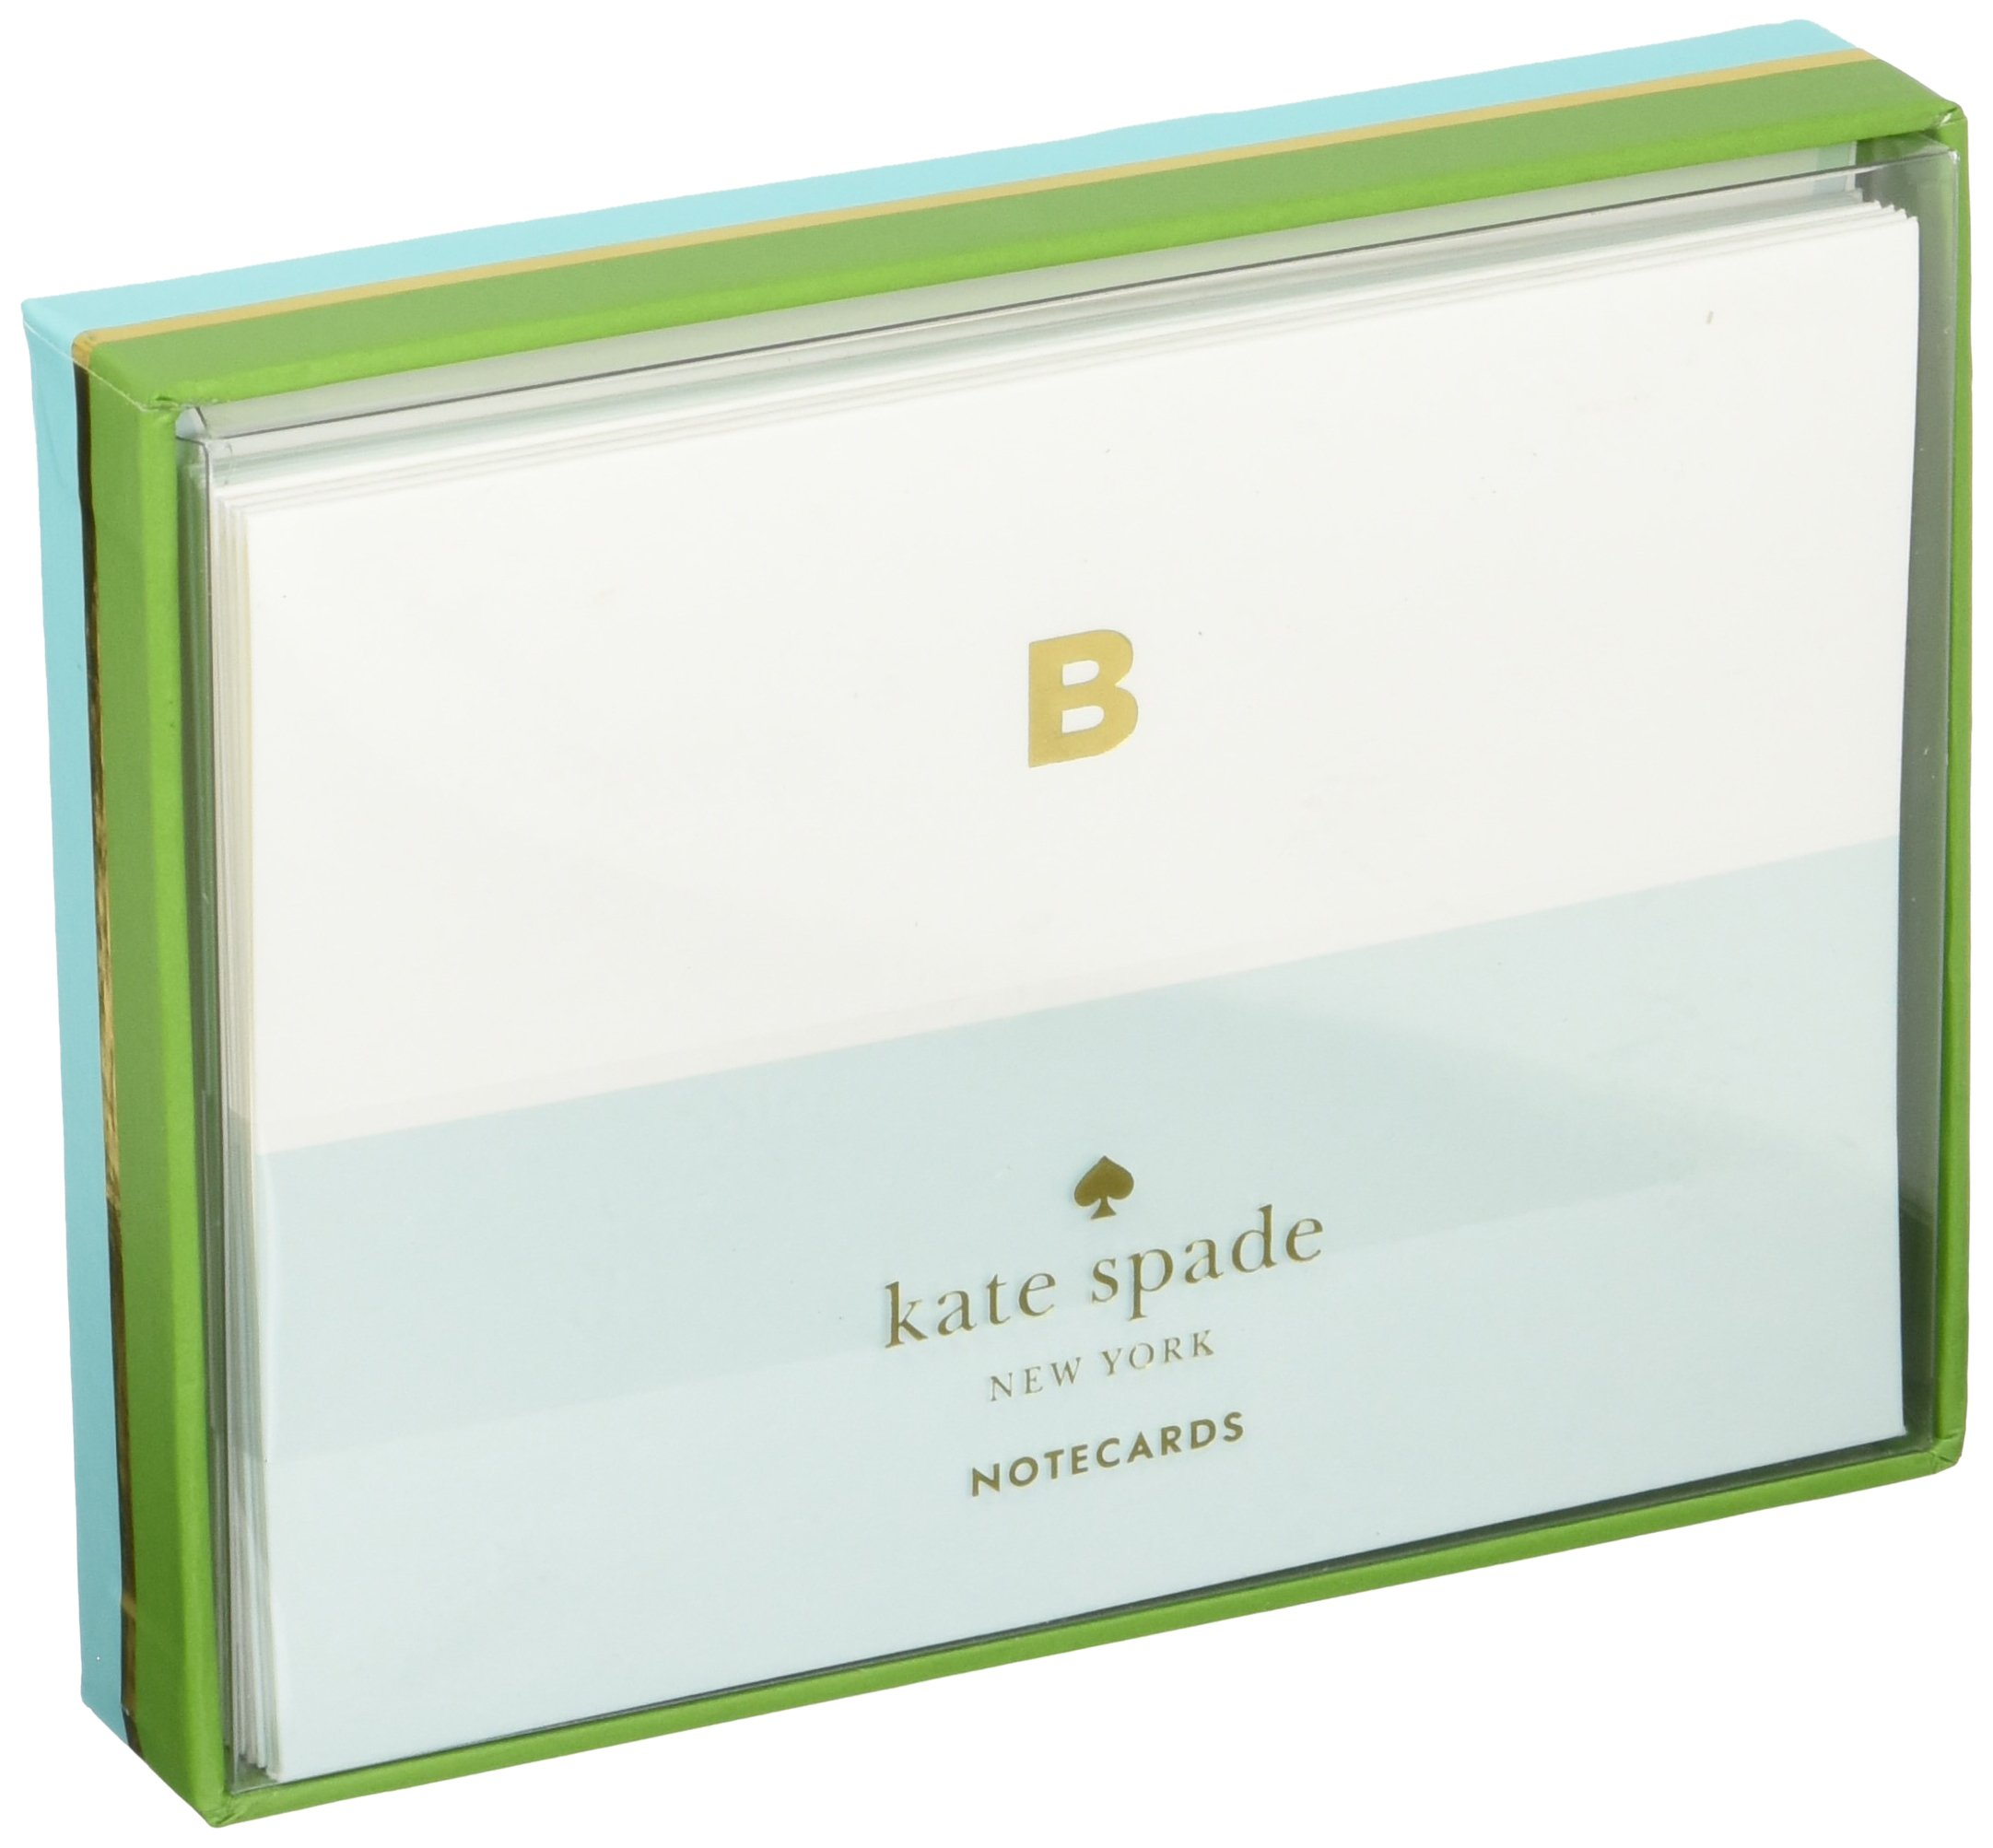 Kate Spade Dipped Initial Fold over Notes, B, Lite Blue (1740B) by Kate Spade New York